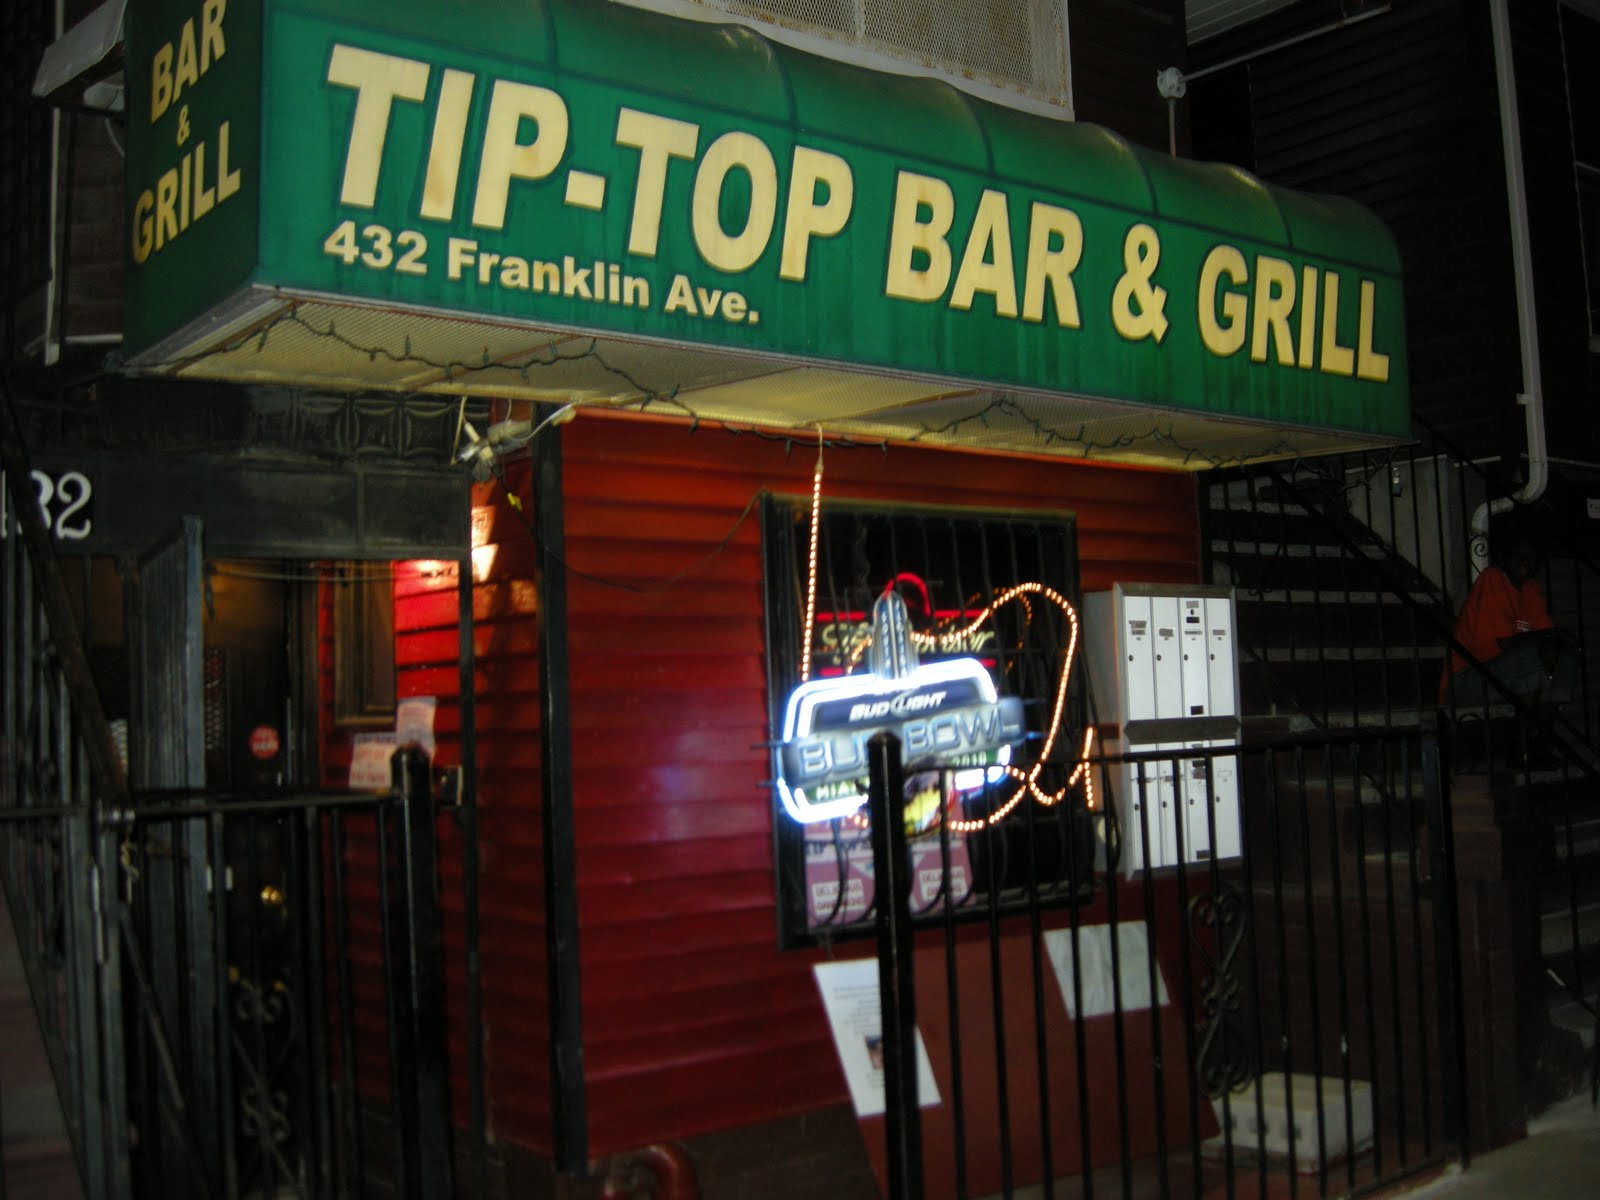 Ordinaire Tip Top Bar And Grill In Bed Stuy, A Neighborhood Joint Where The Vibe Is  Friendly And The $15 All You Can Eat Soul Buffet Plentiful  Chicken And  Ribs, ...